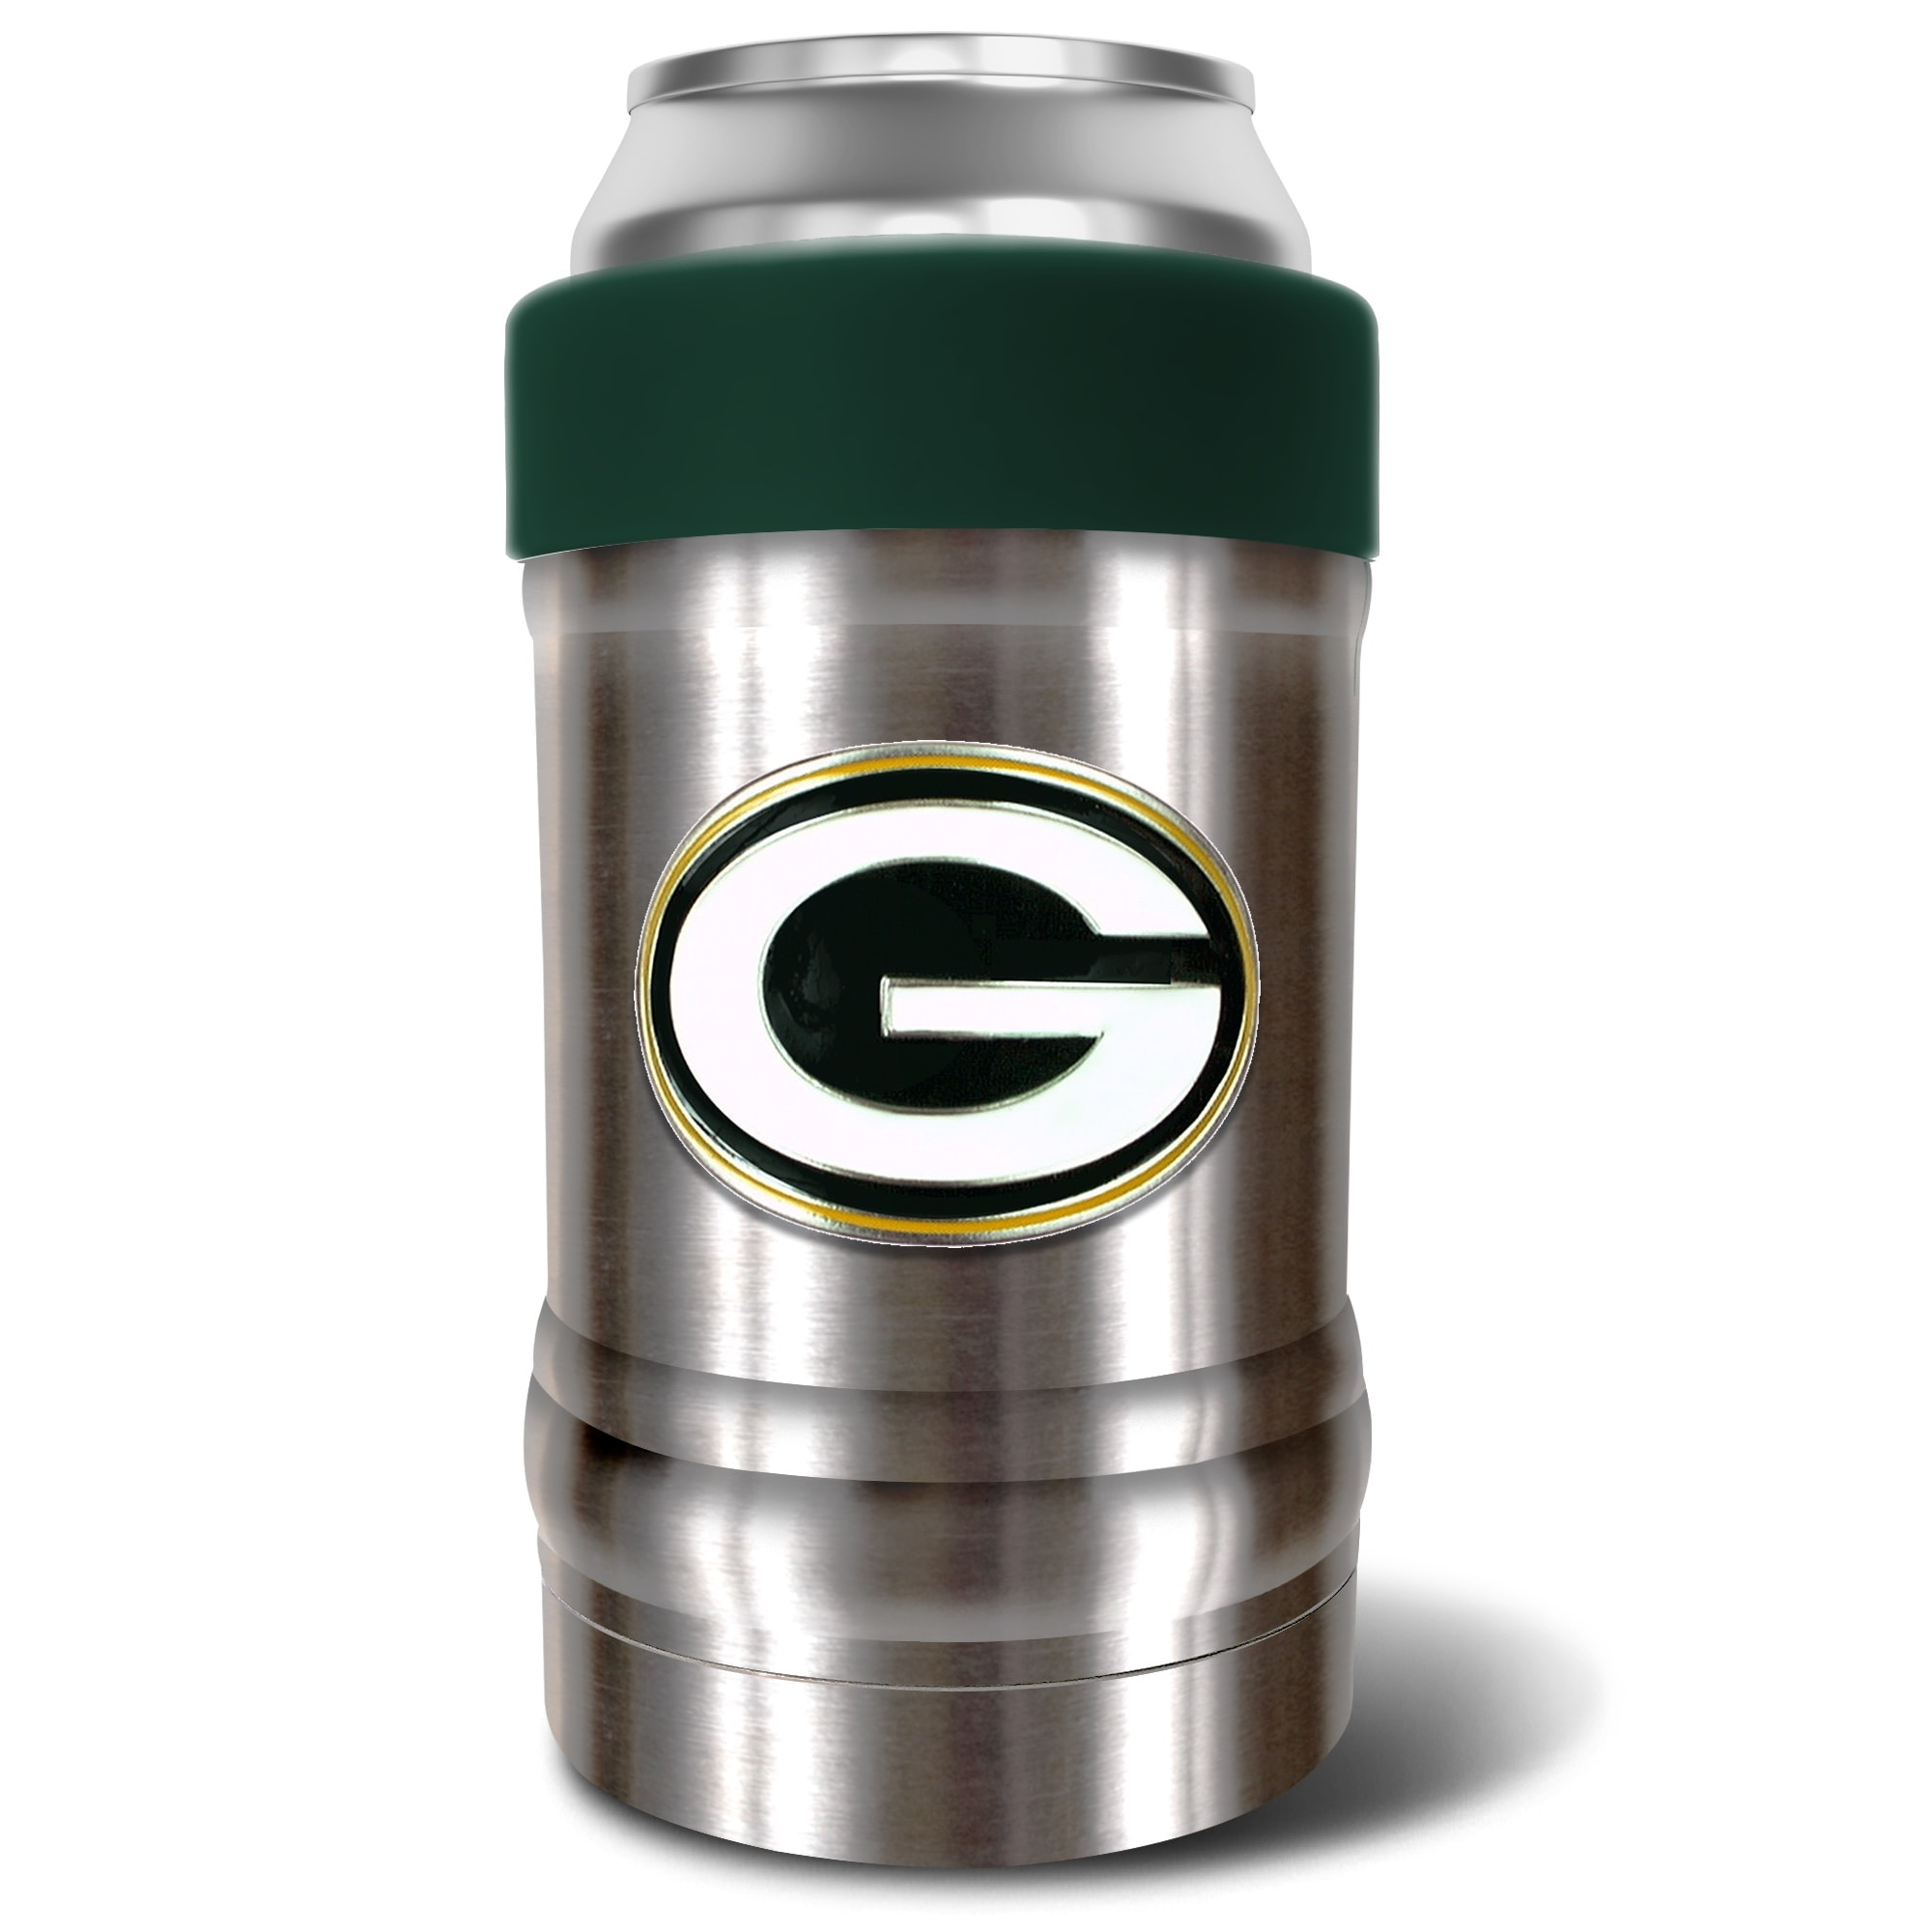 Green Bay Packers The Locker 12oz. Can Holder - Silver/Green